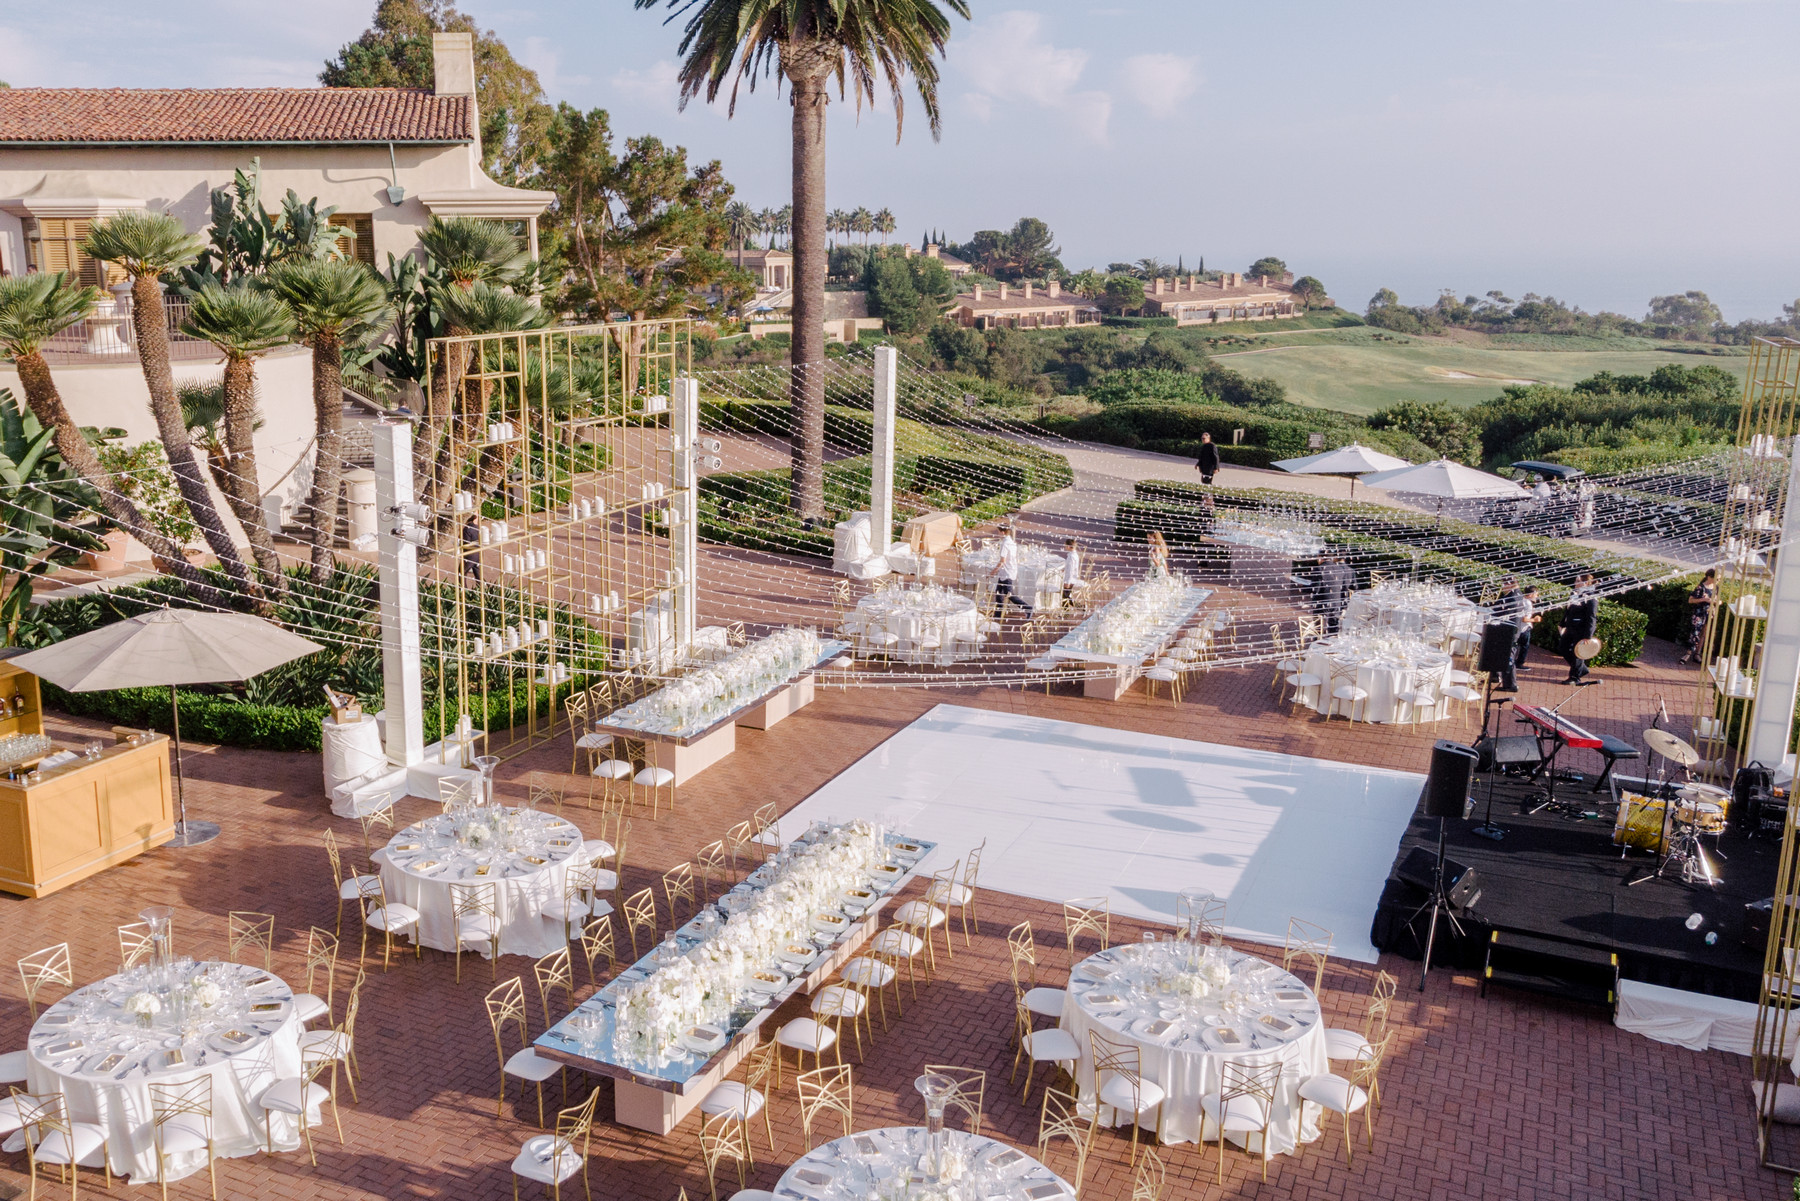 Pelican Hill outdoor reception site with white decor -John and Joseph Photography